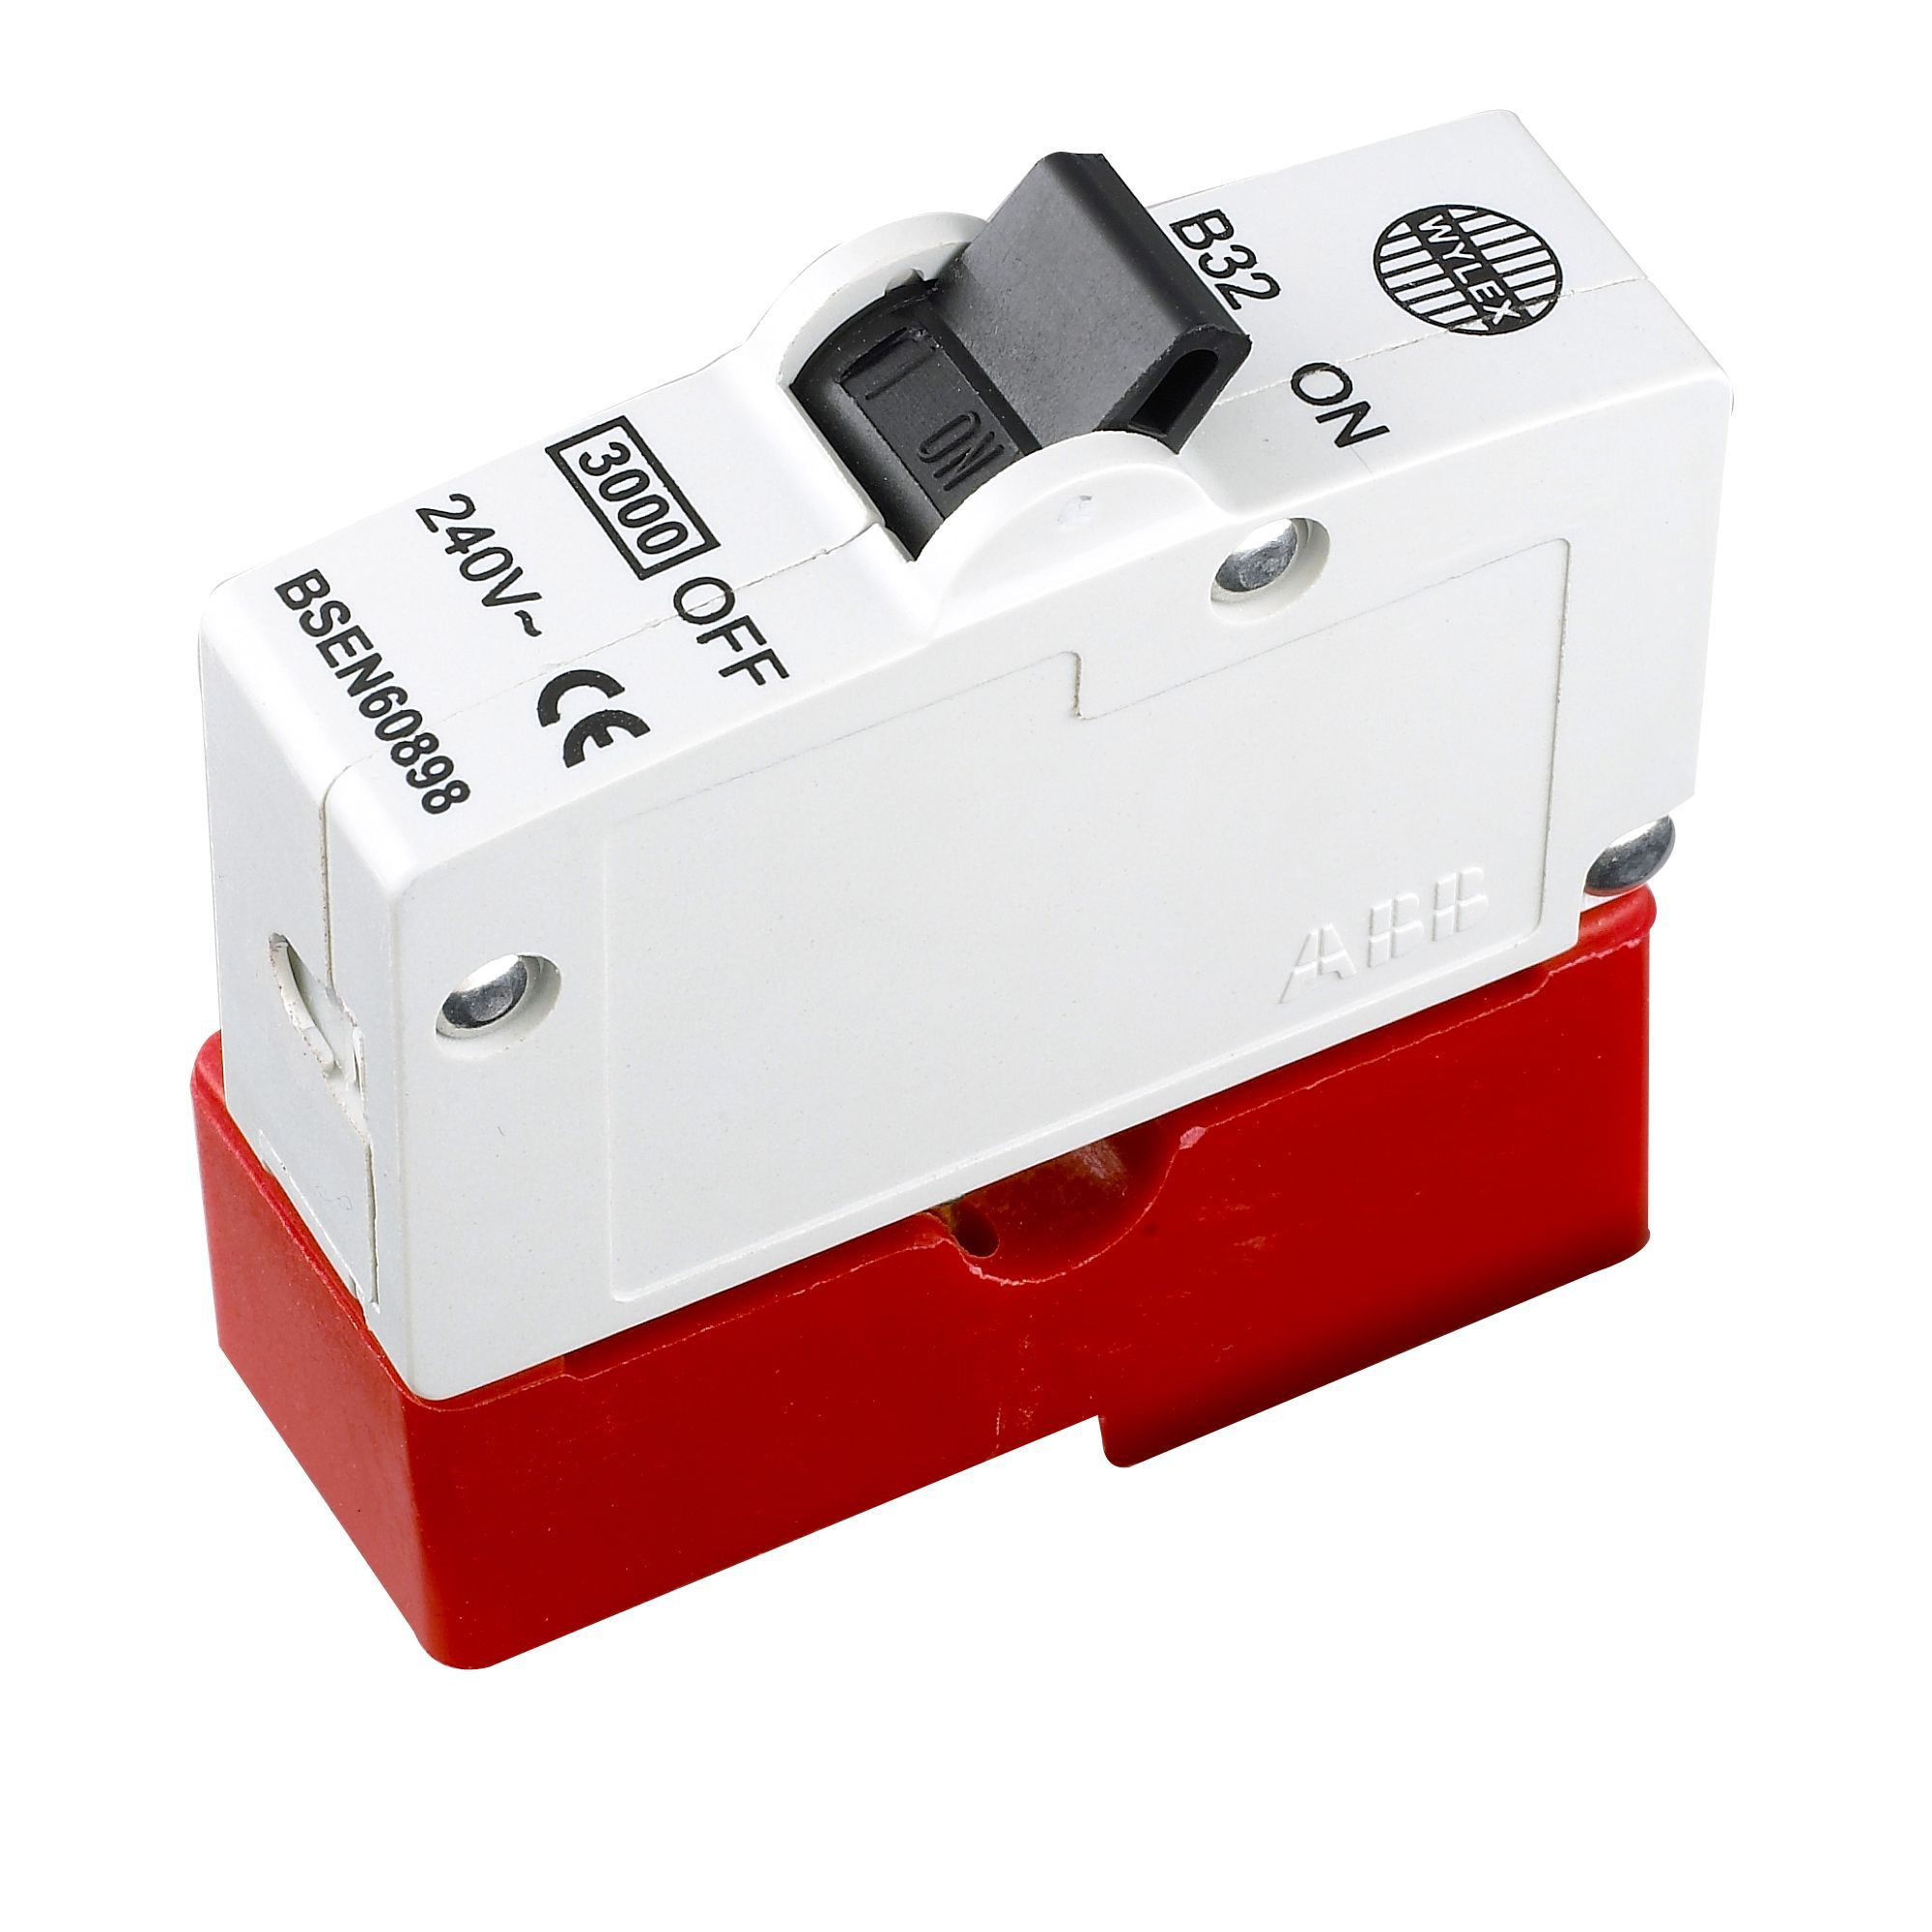 Wylex 32A Miniature circuit breaker | Departments | DIY at B&Q.